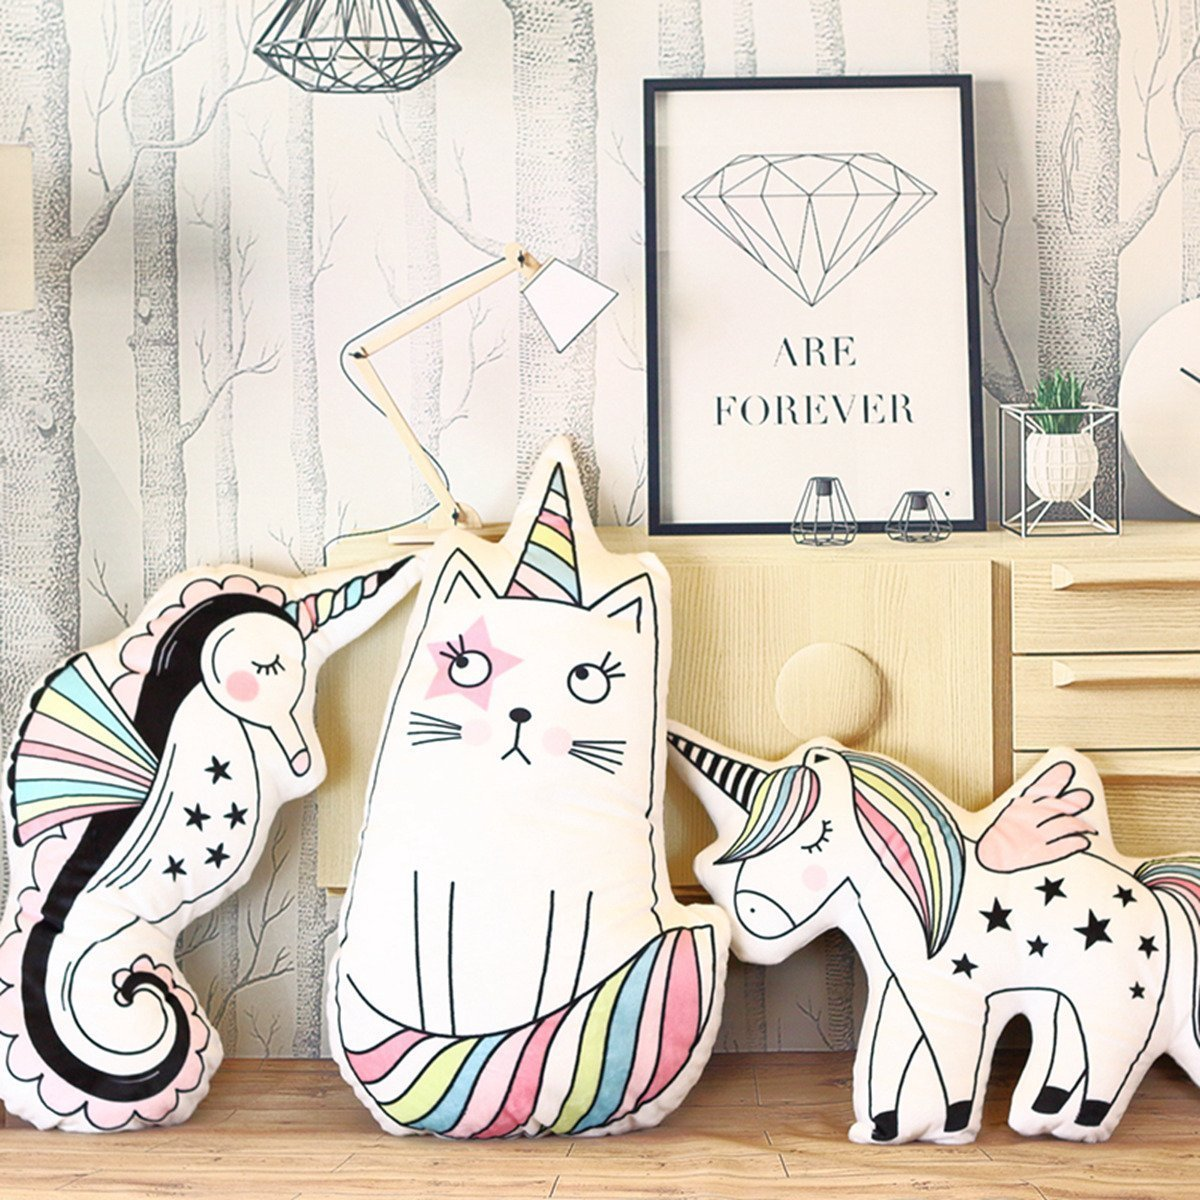 ABYED 16 Unicorn Emoji Throw Pillow Stuffed Animals Courch Plush Toy,Home Decorations and Unicorn Party Supplies Perfect Unicorn Gifts!,Sea Horse